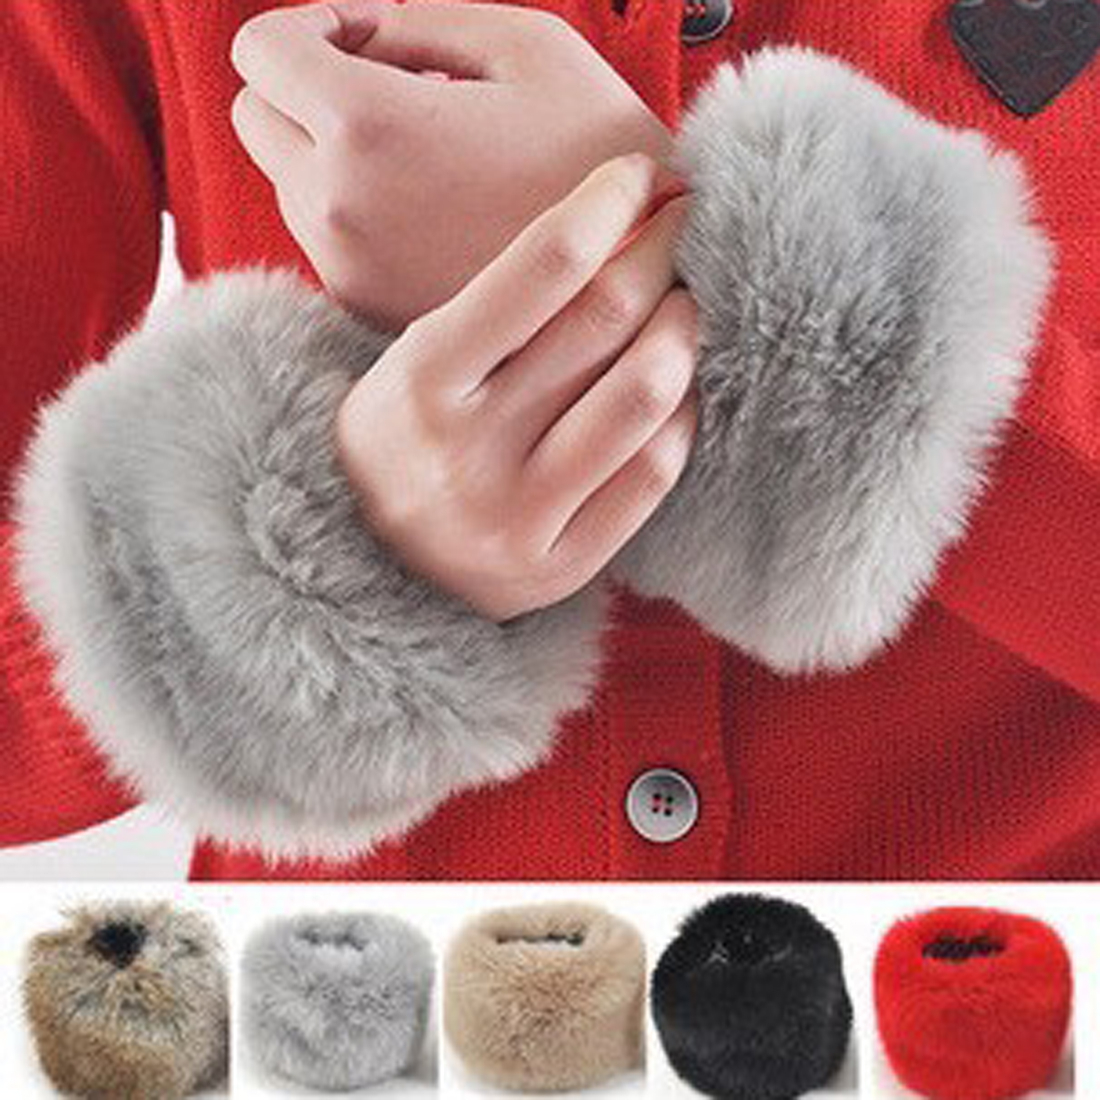 Hot Warm Faux Fur Wrist Slap On Cuffs Winter Ladies Solid Color Plush Wrist Protector Women's Warmer Cuffs Arm Warmers Wraps New